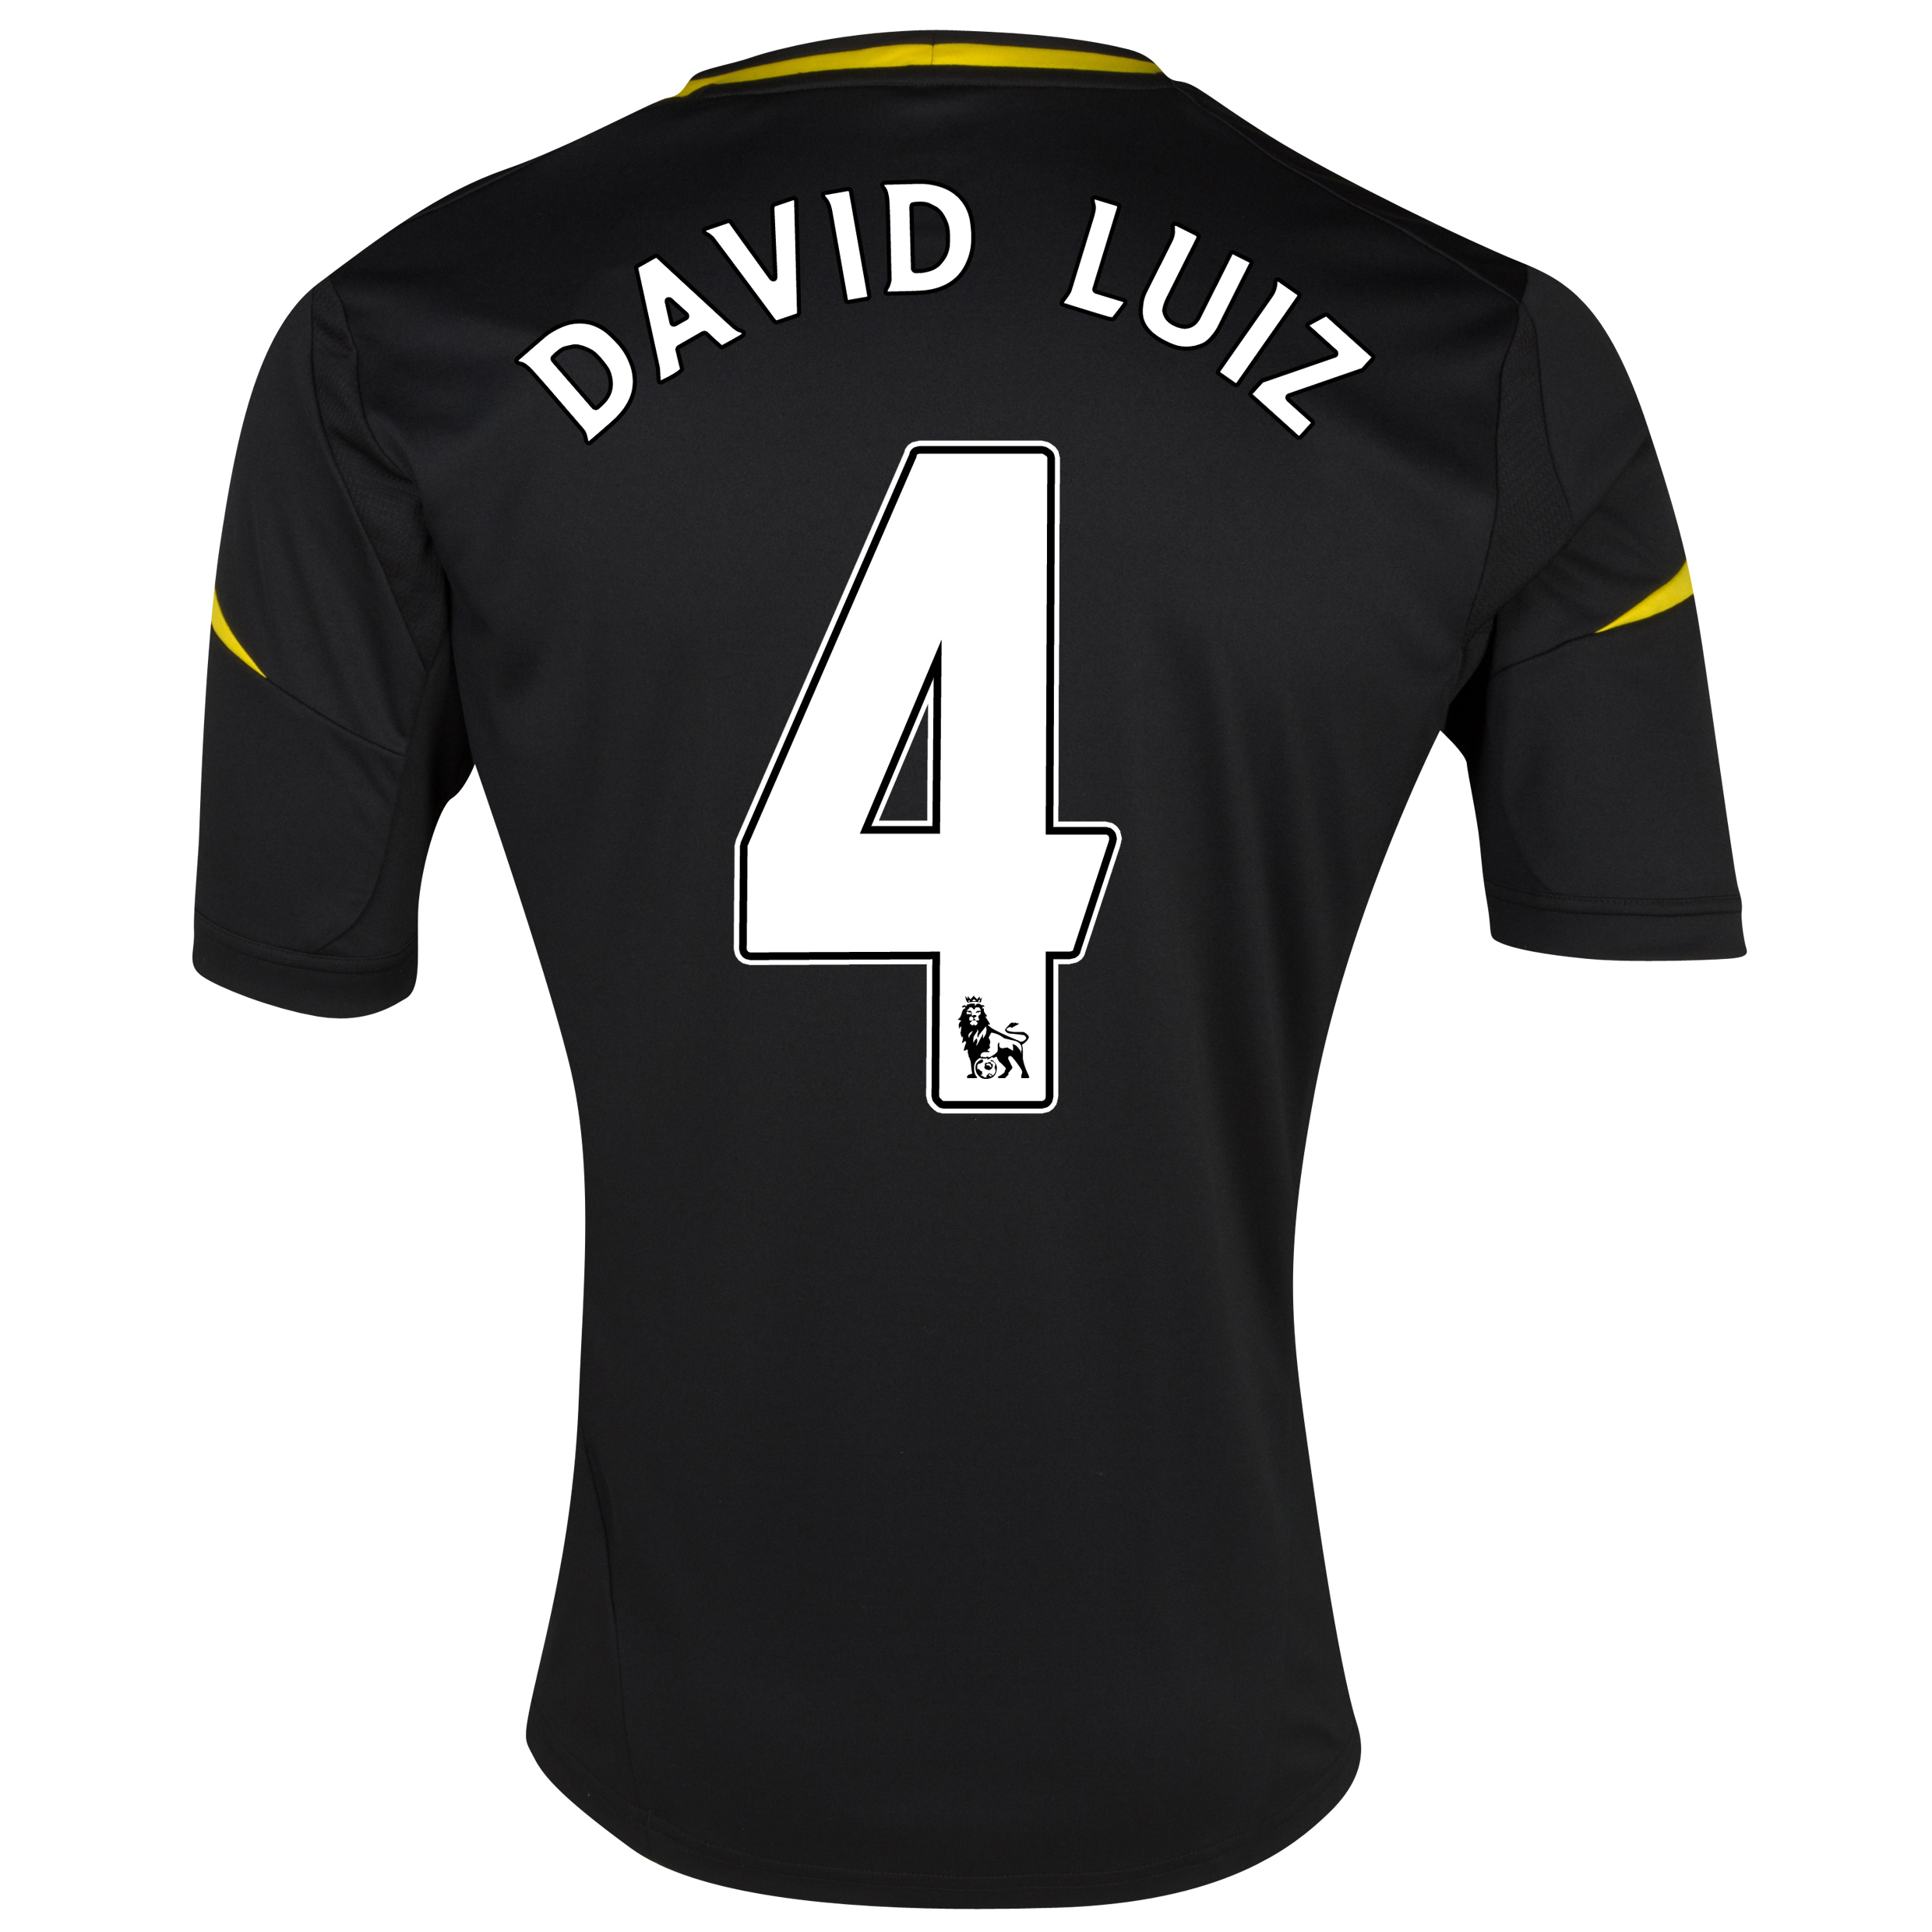 Chelsea Third Shirt 2012/13 with David Luiz 4 printing